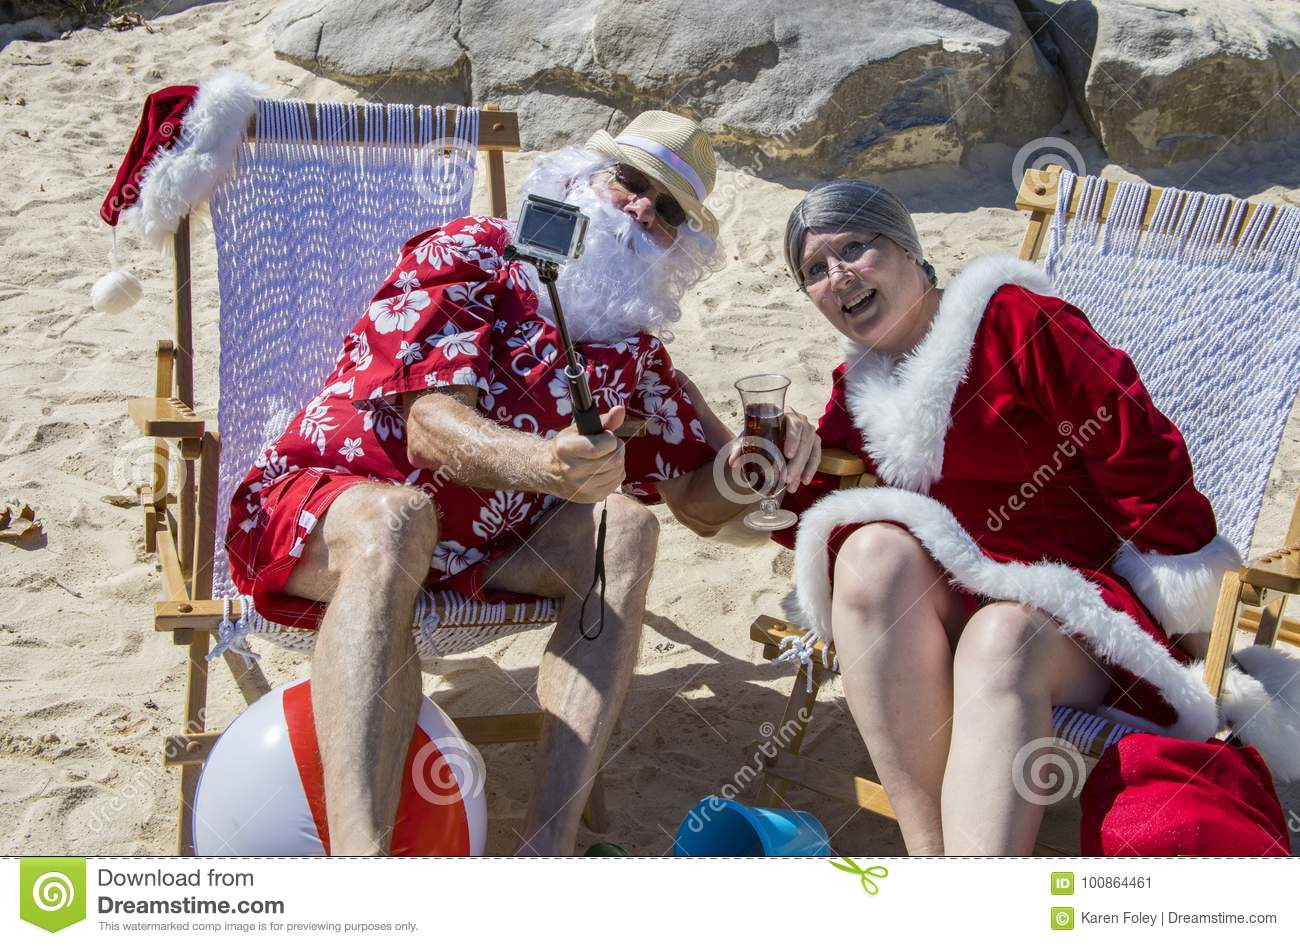 ddbd09de Santa Claus in red swimming trunks and Hawaiian shirt lounging on sandy  beach with Mrs Claus taking selfie.